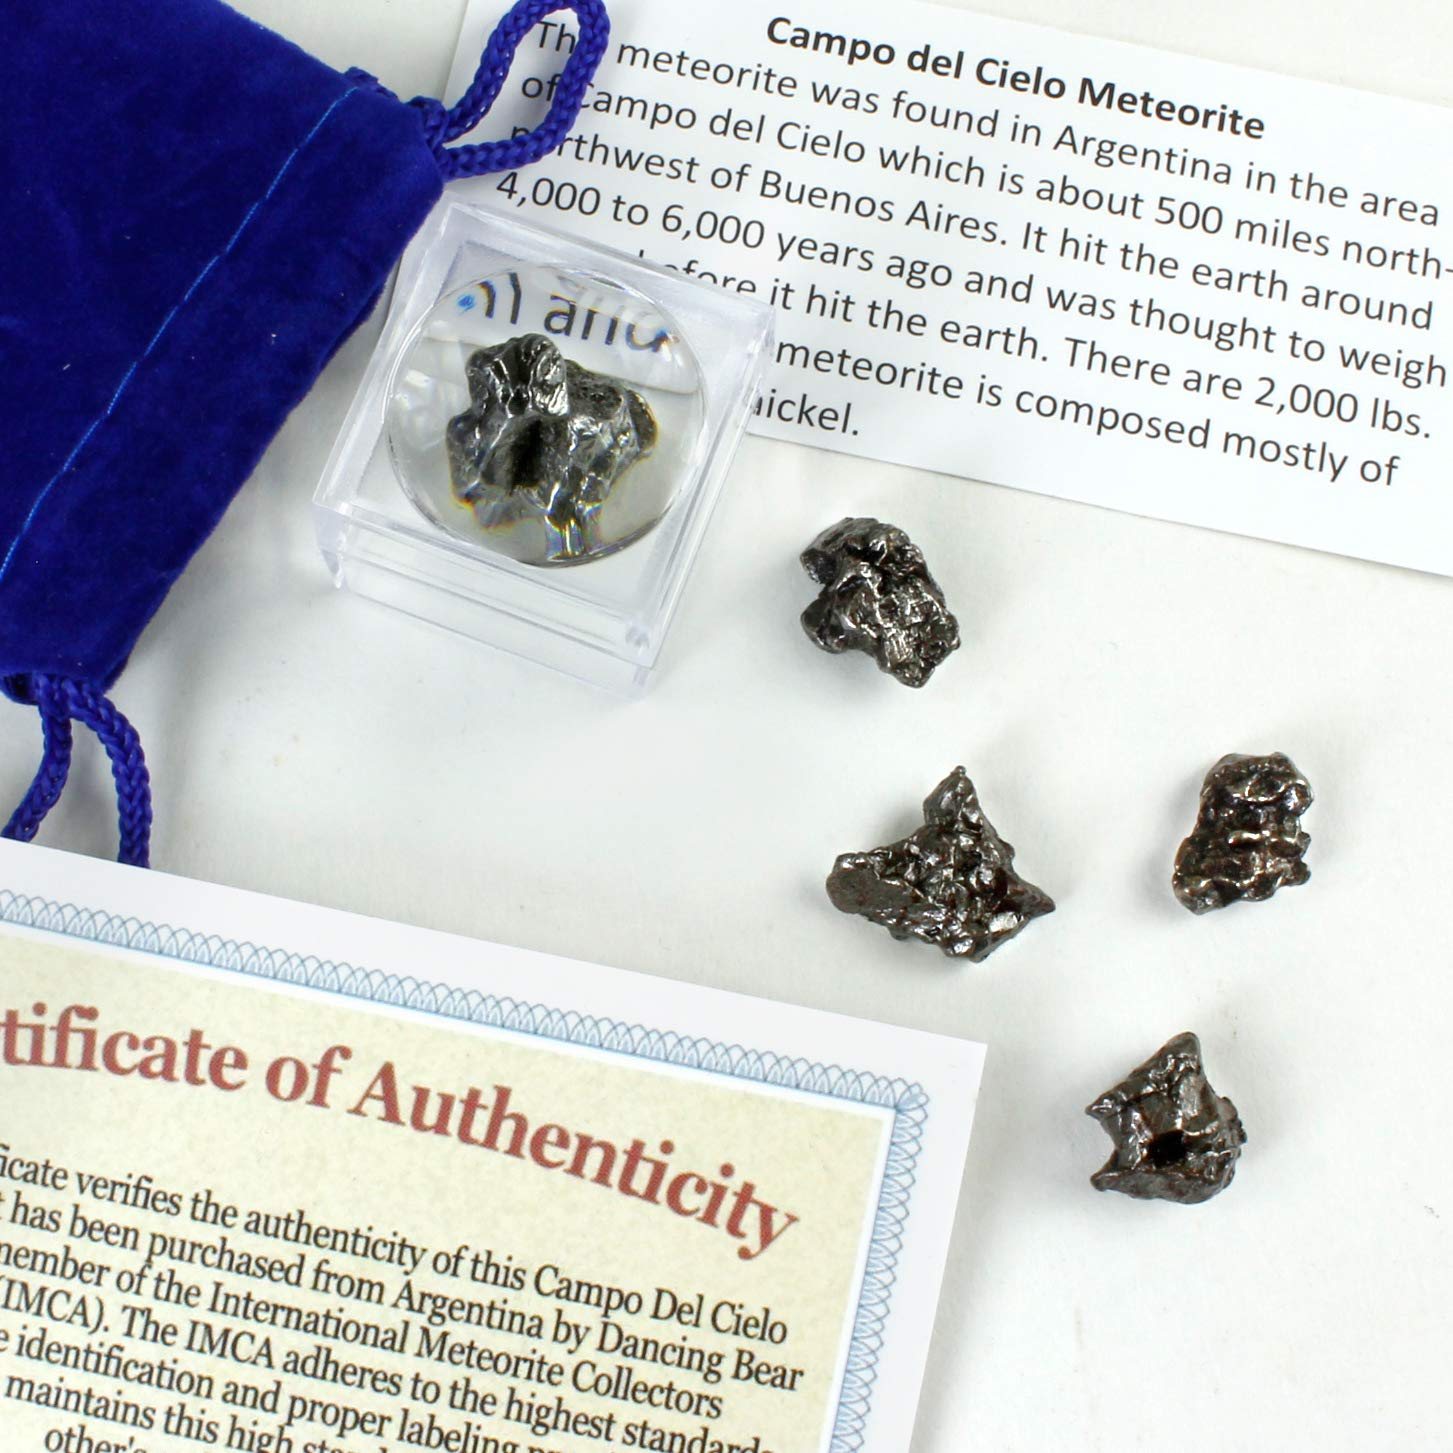 Meteorite from Space, 5 pcs Campo del Cielo from Argentina/ Educational Card & Magnifying Box, Dancing Bear Bran